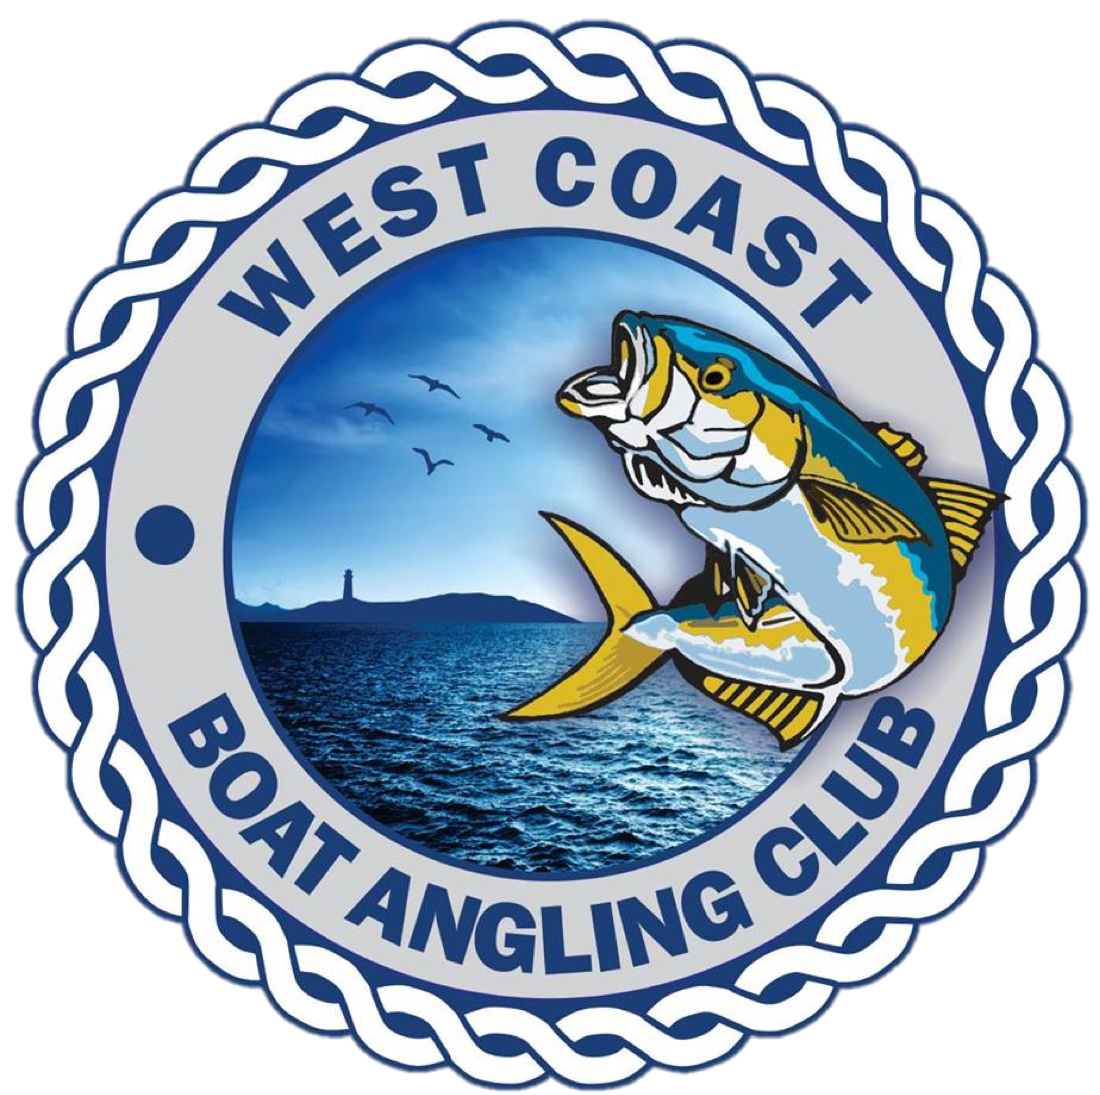 West Coast Boat Angling Club